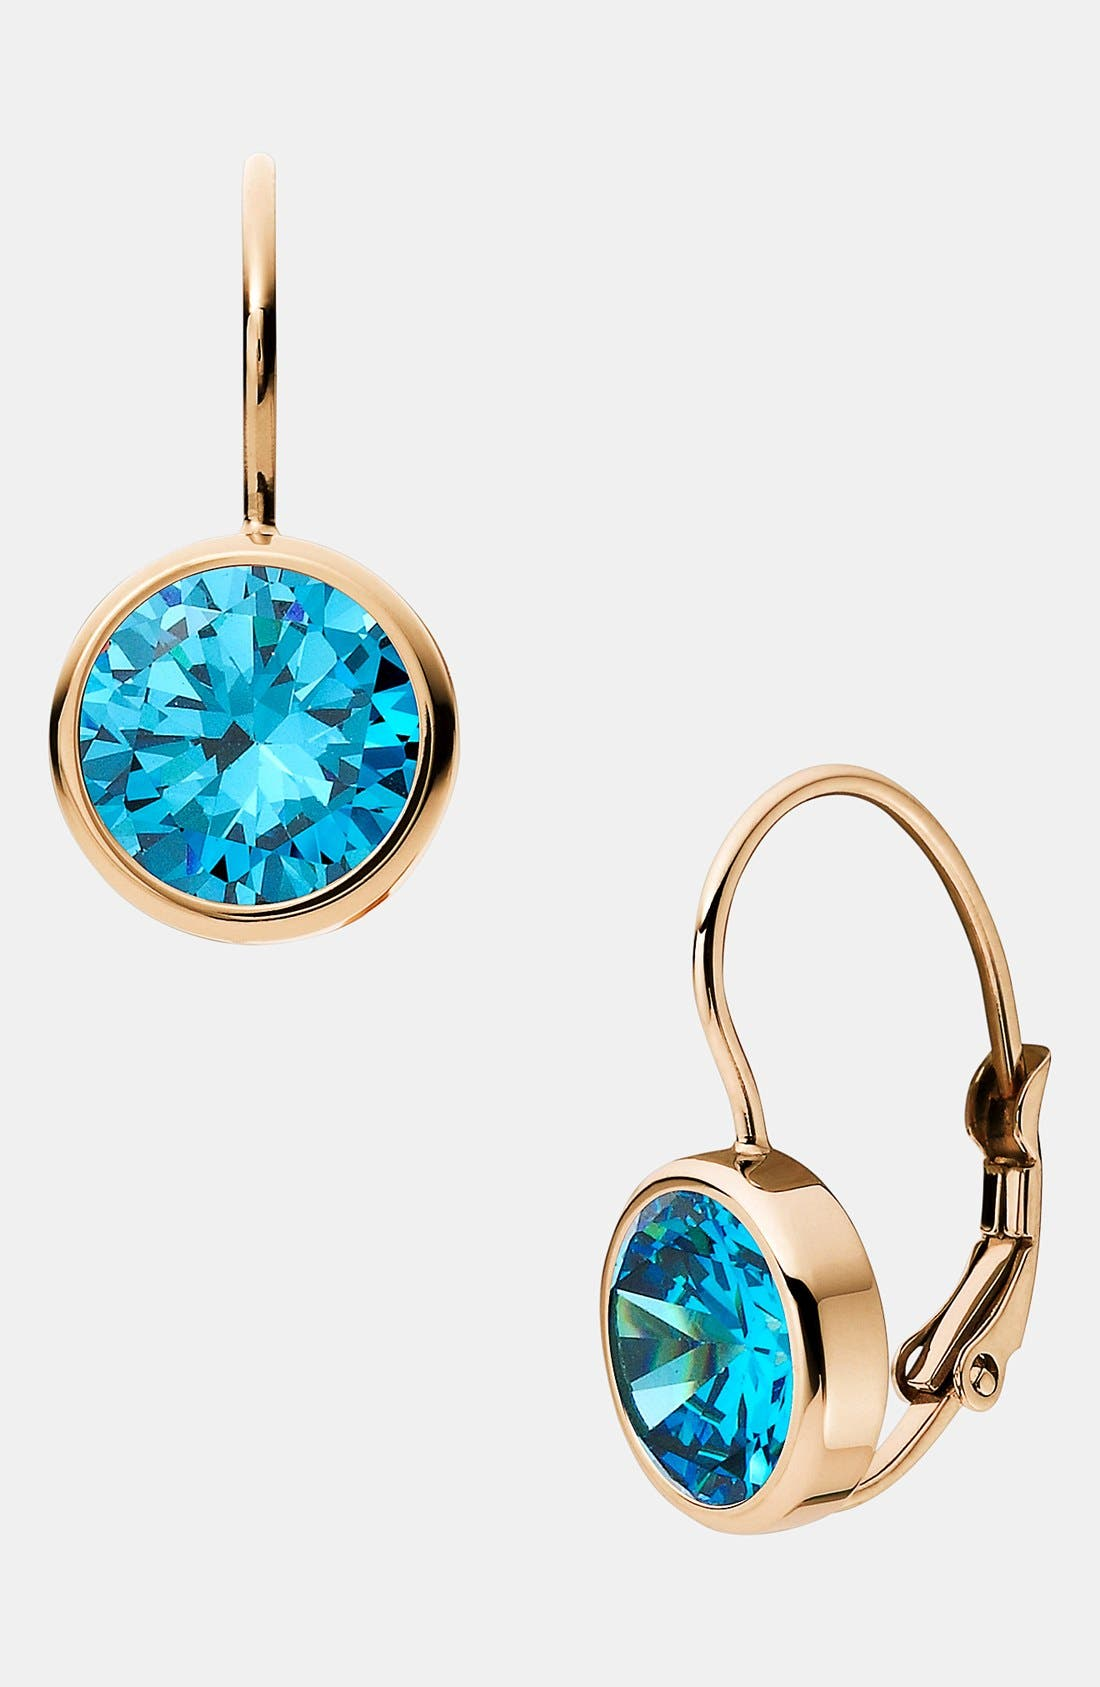 Main Image - Michael Kors 'Botanicals' Drop Earrings